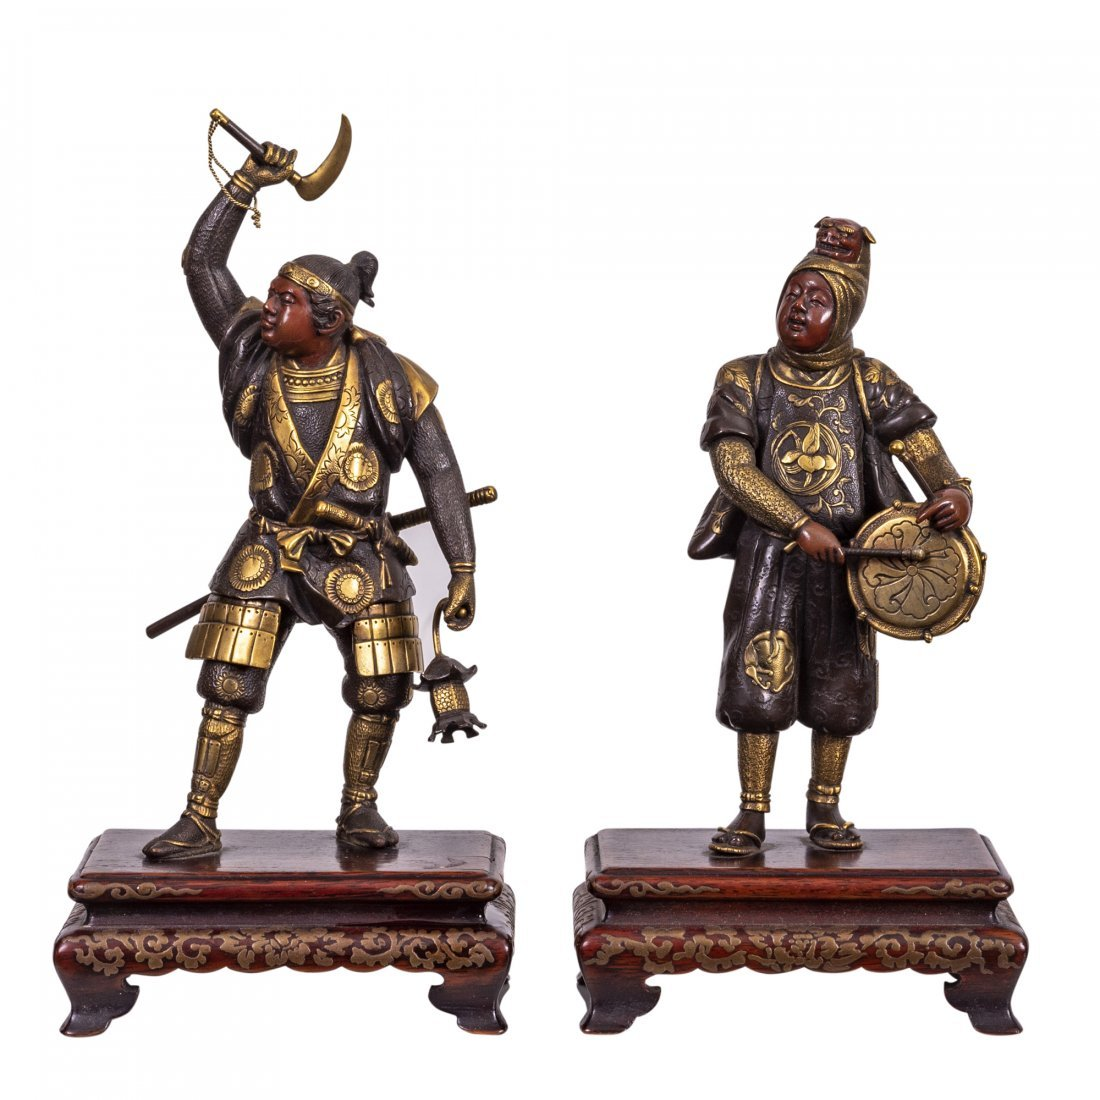 A Very Fine Pair of Inlaid Bronze Figures by Miyao